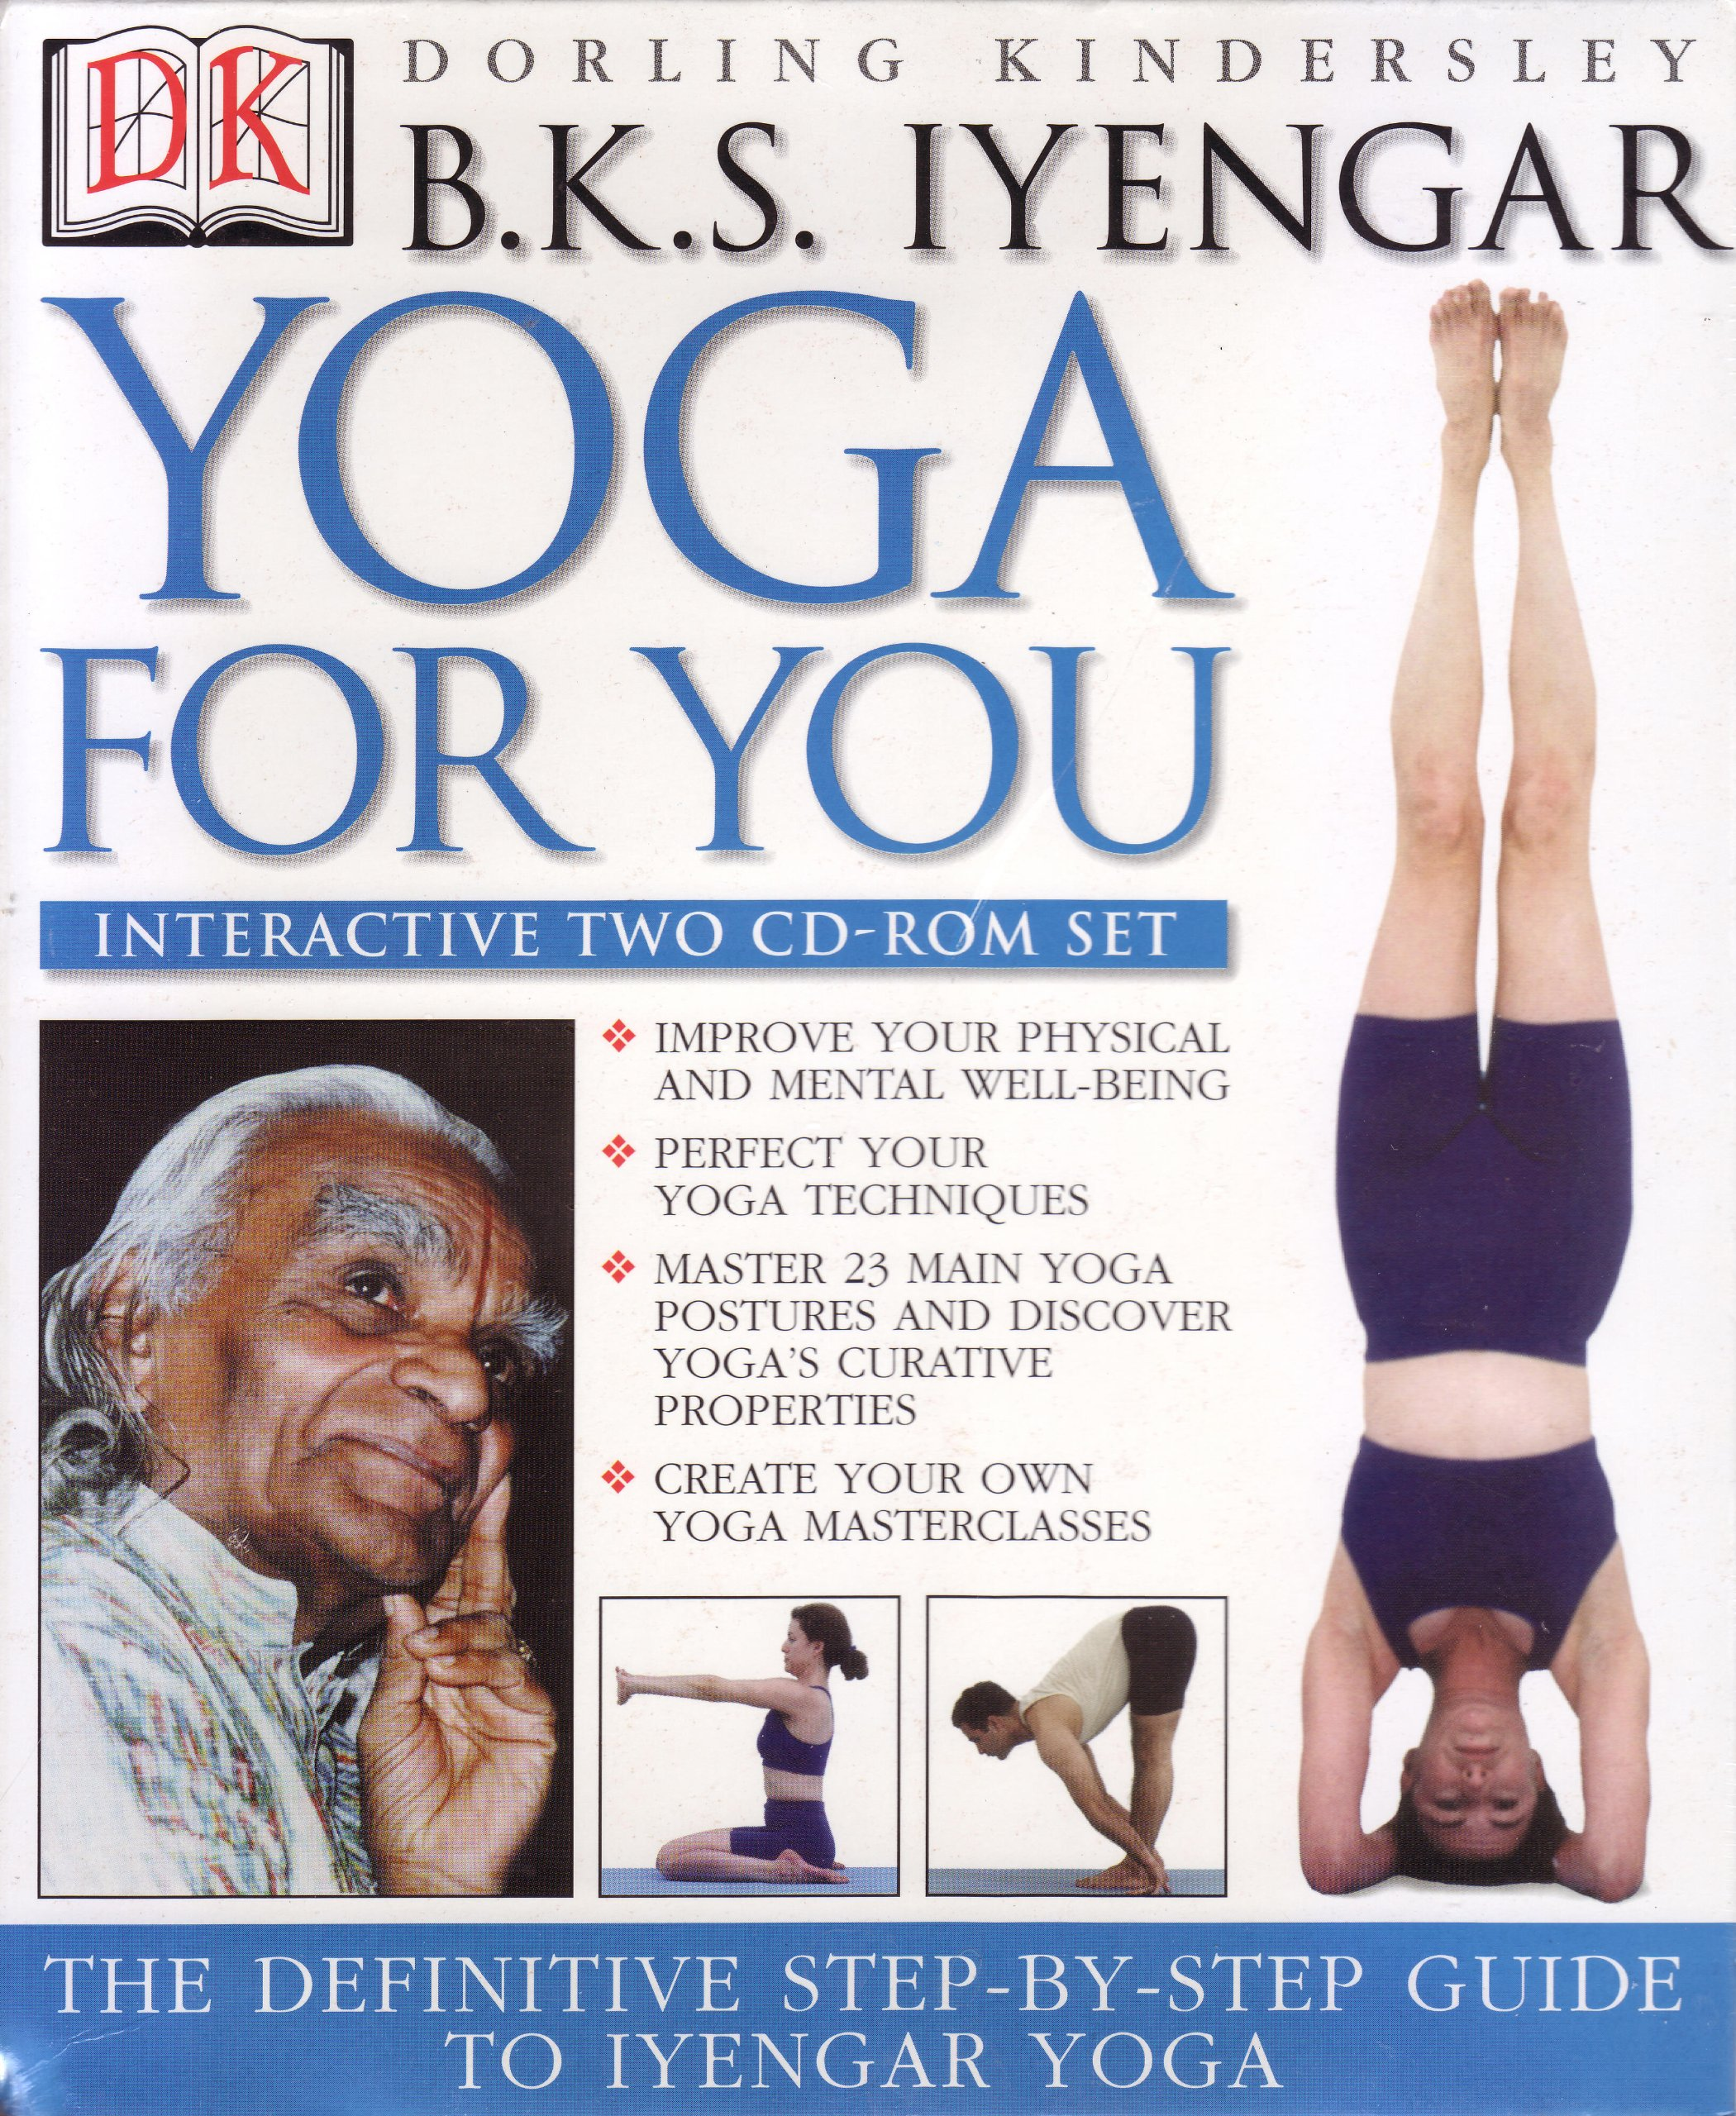 Yoga For You (Interactive Two CD-Rom set): B. K. S. Iyengar ...